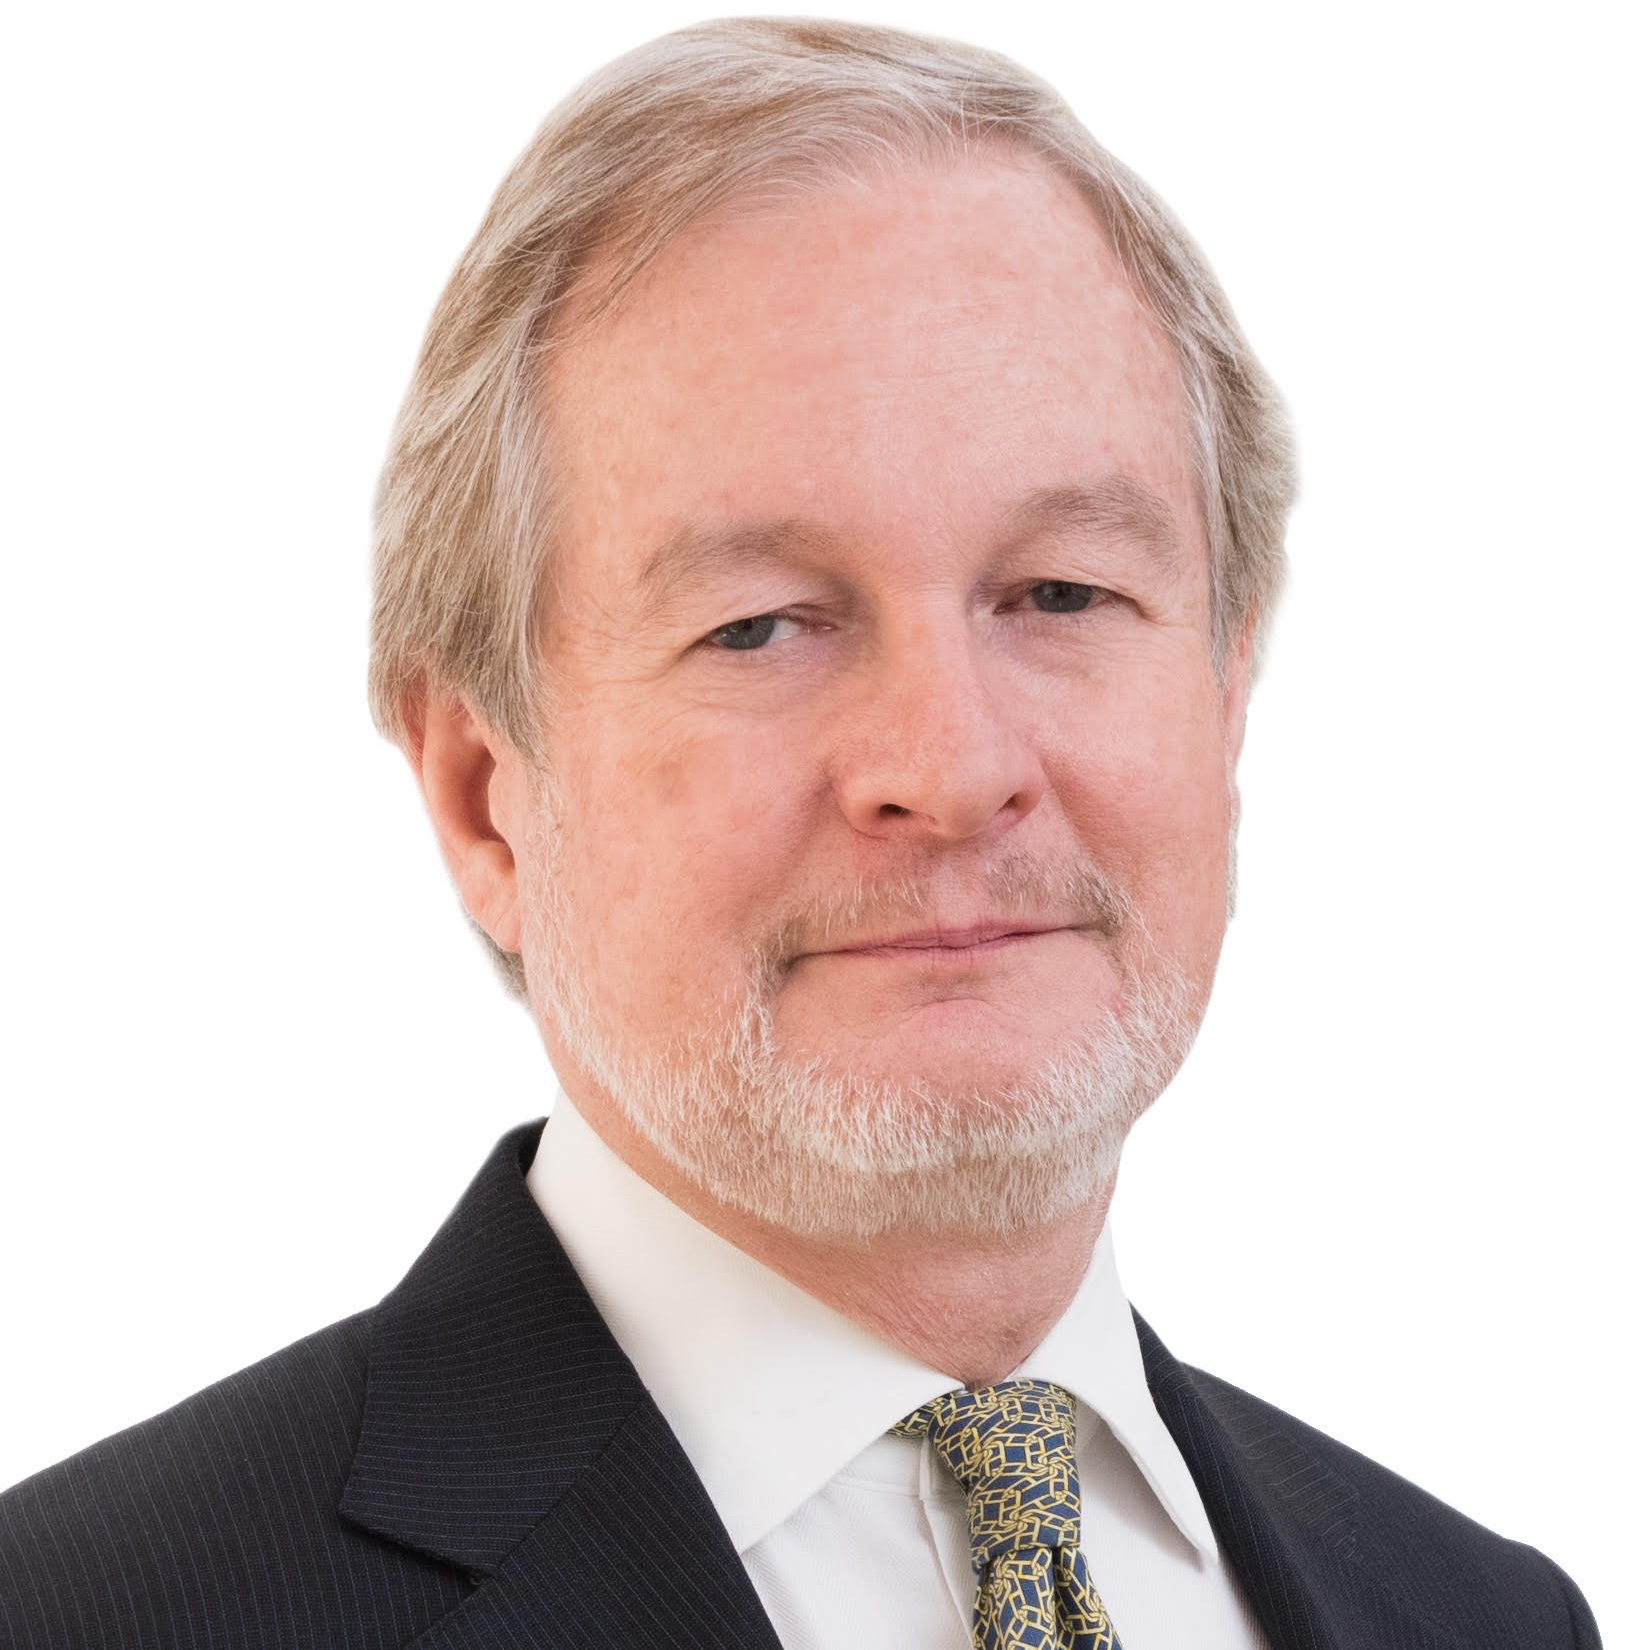 Etienne Deffarges, member of the Executive Council of the Harvard School of Public Health, active angel investor, and a member of the Band of Angels